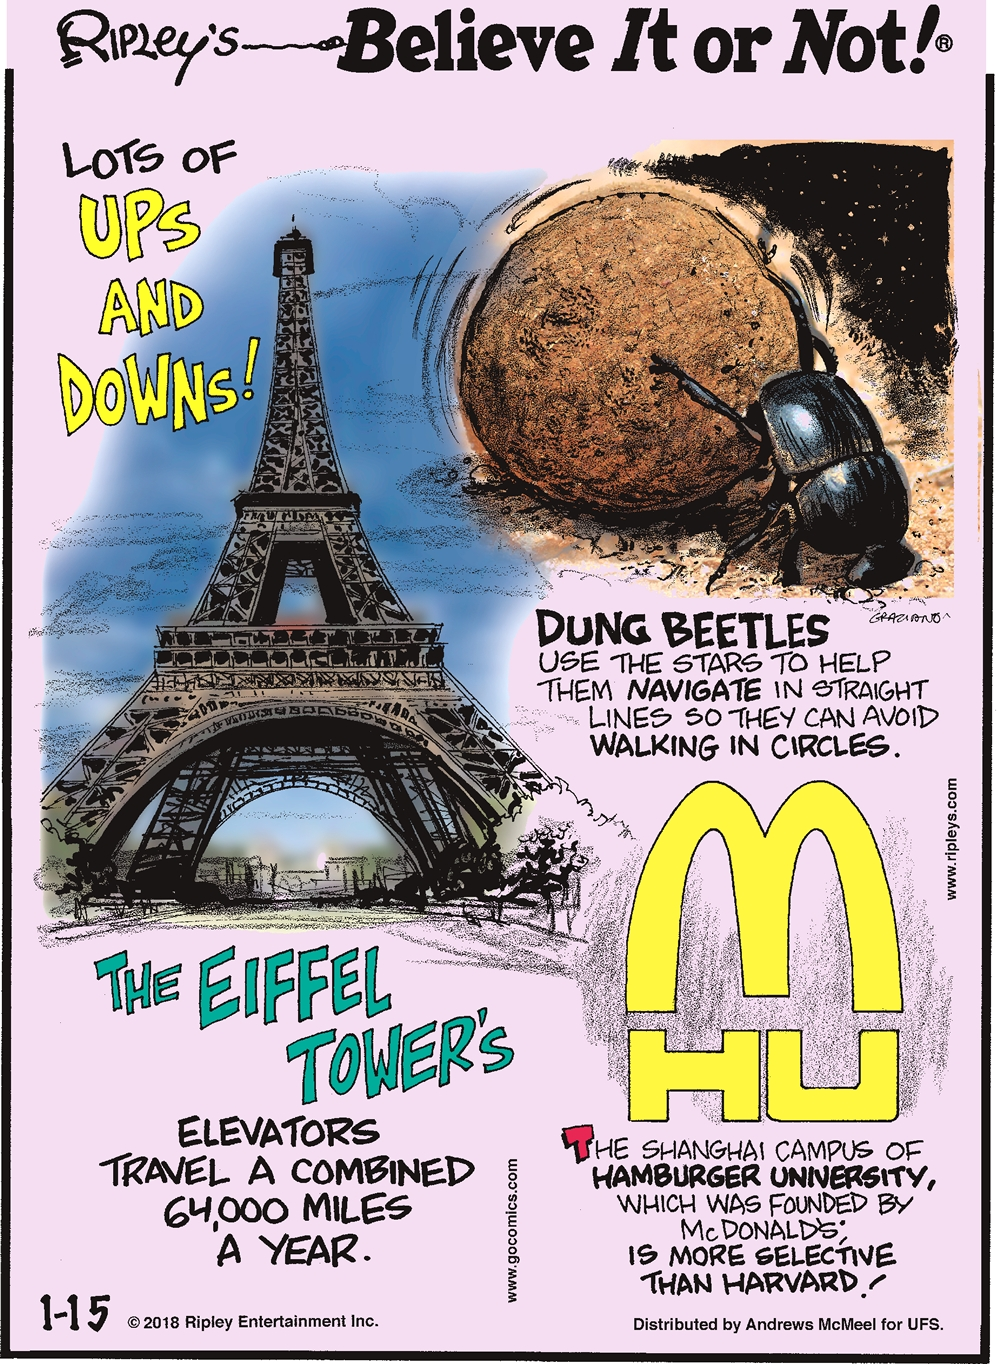 The Eiffel Tower's elevators travel a combined 64,000 miles a year.-------------------- Dung beetles use the stars to help them navigate in straight lines so they can avoid walking in circles.-------------------- The Shanghai campus of Hamburger University, which was founded by McDonald's, is more selective than Harvard!